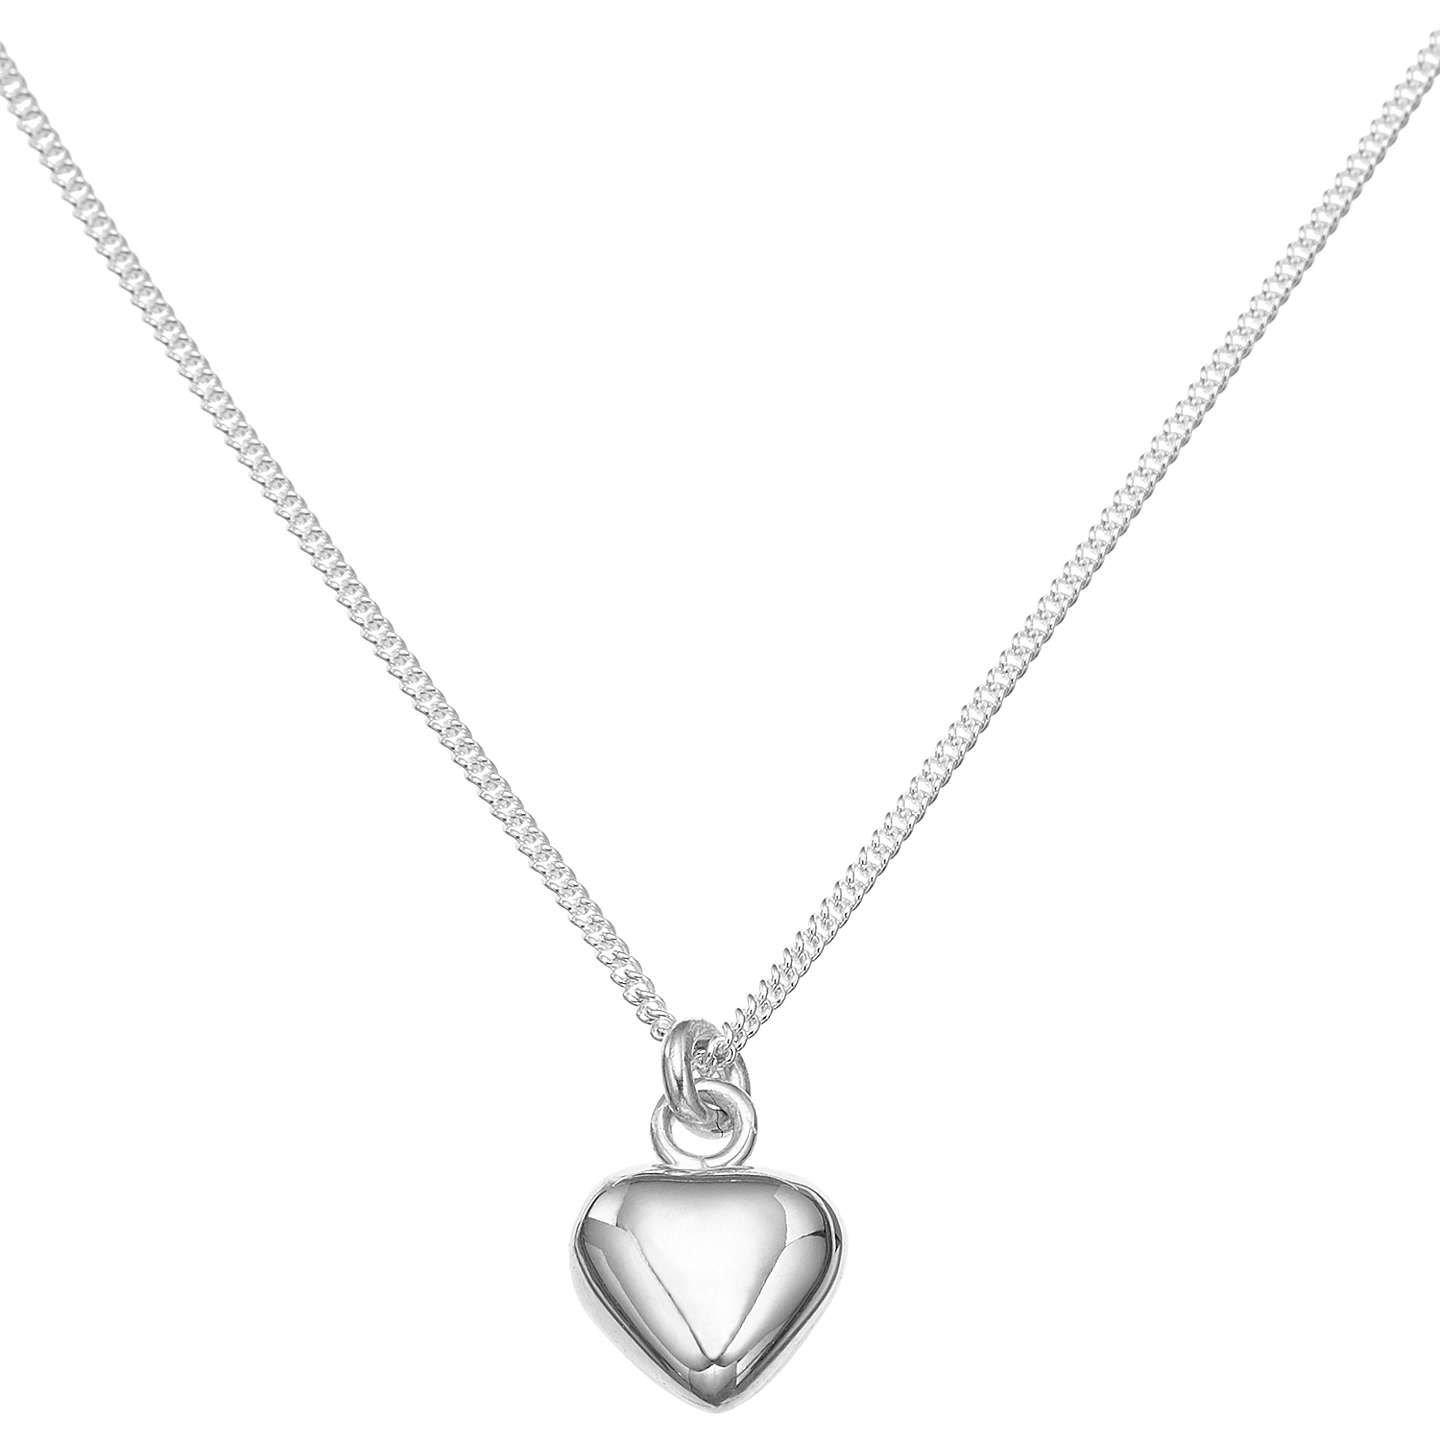 BuyJohn Lewis Sterling Silver Heart Necklace Online at johnlewis.com